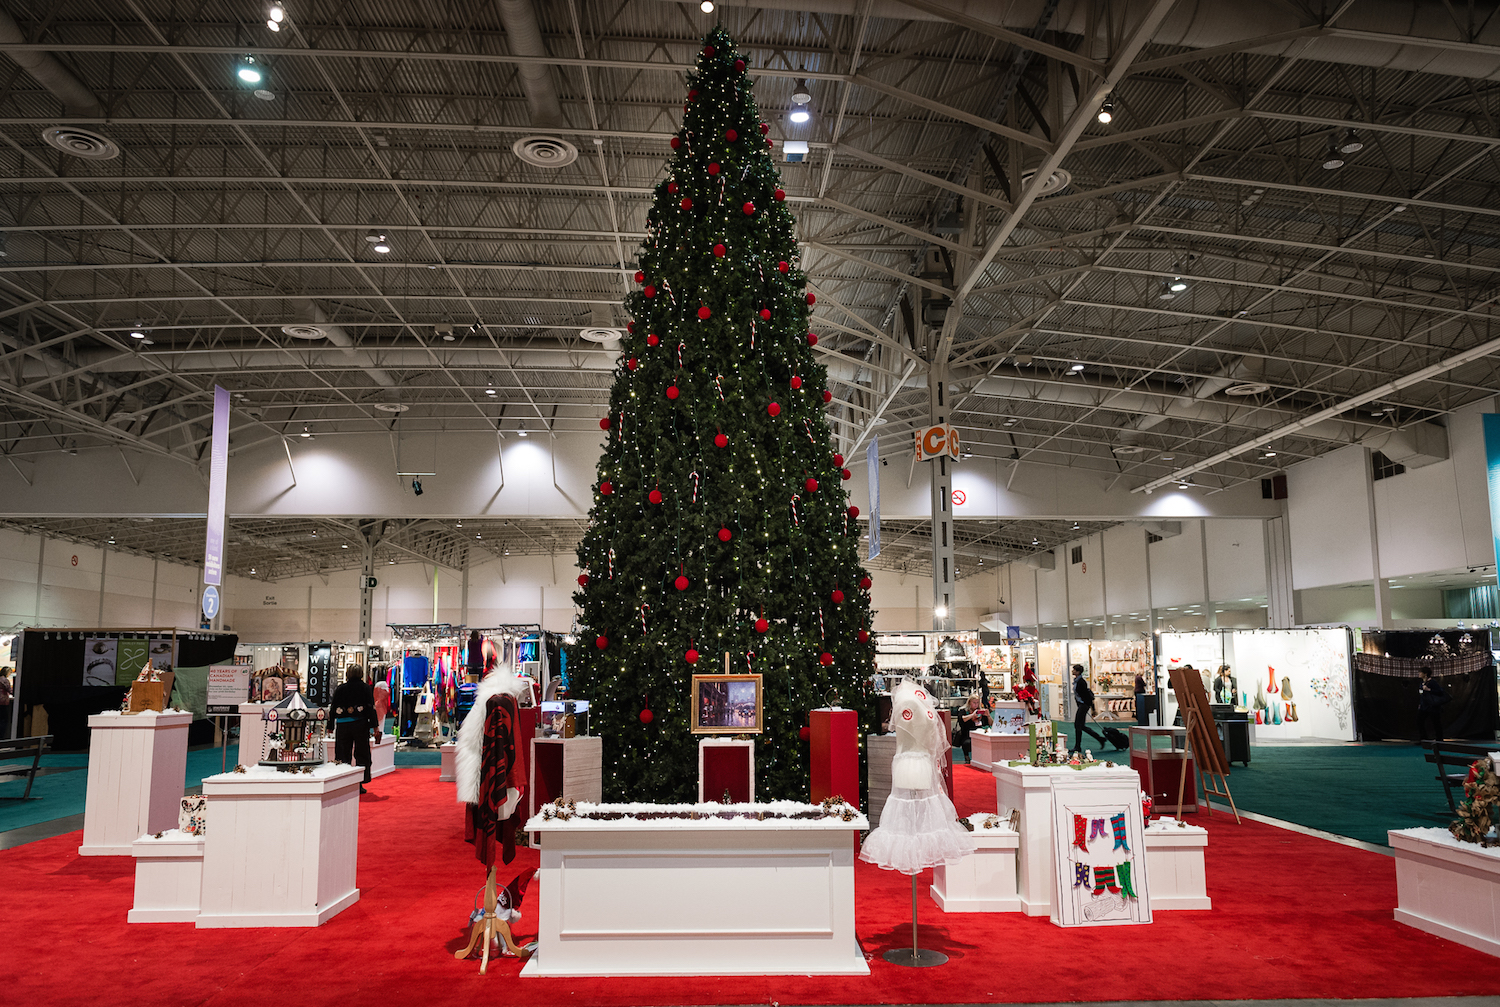 One of a Kind Christmas Show | Courtesy of One of a Kind Show